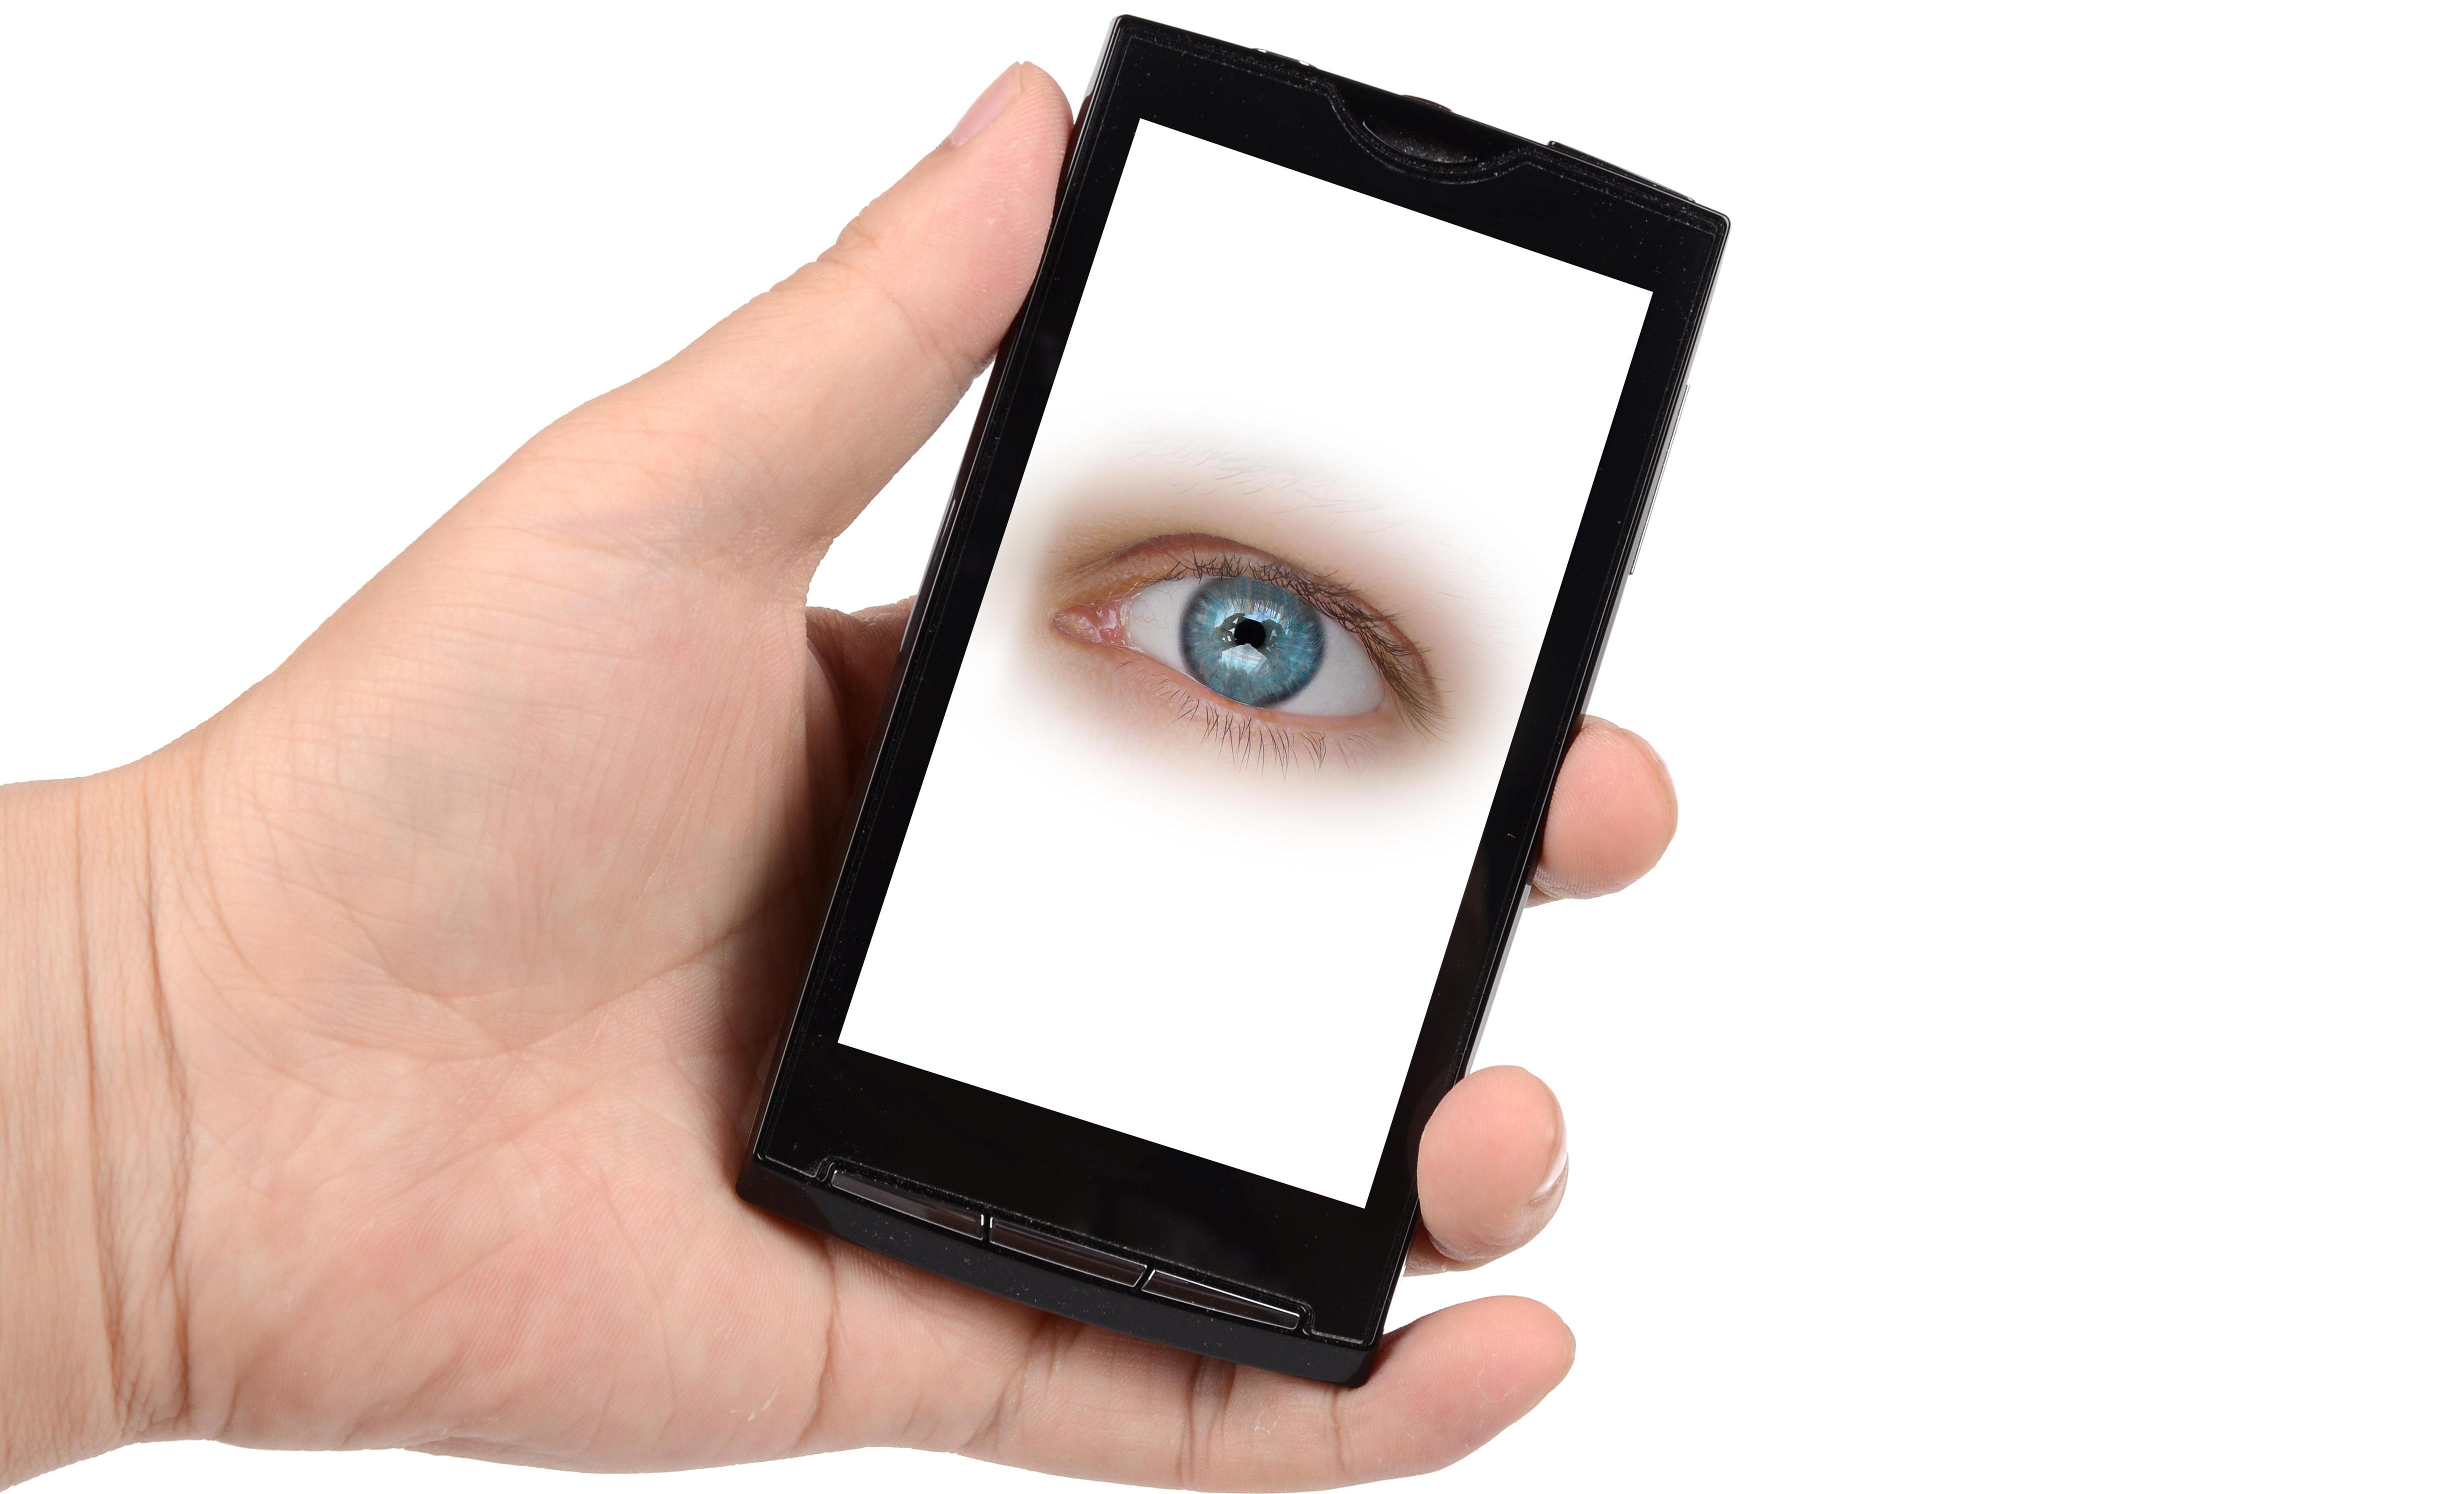 spying on a cellphone